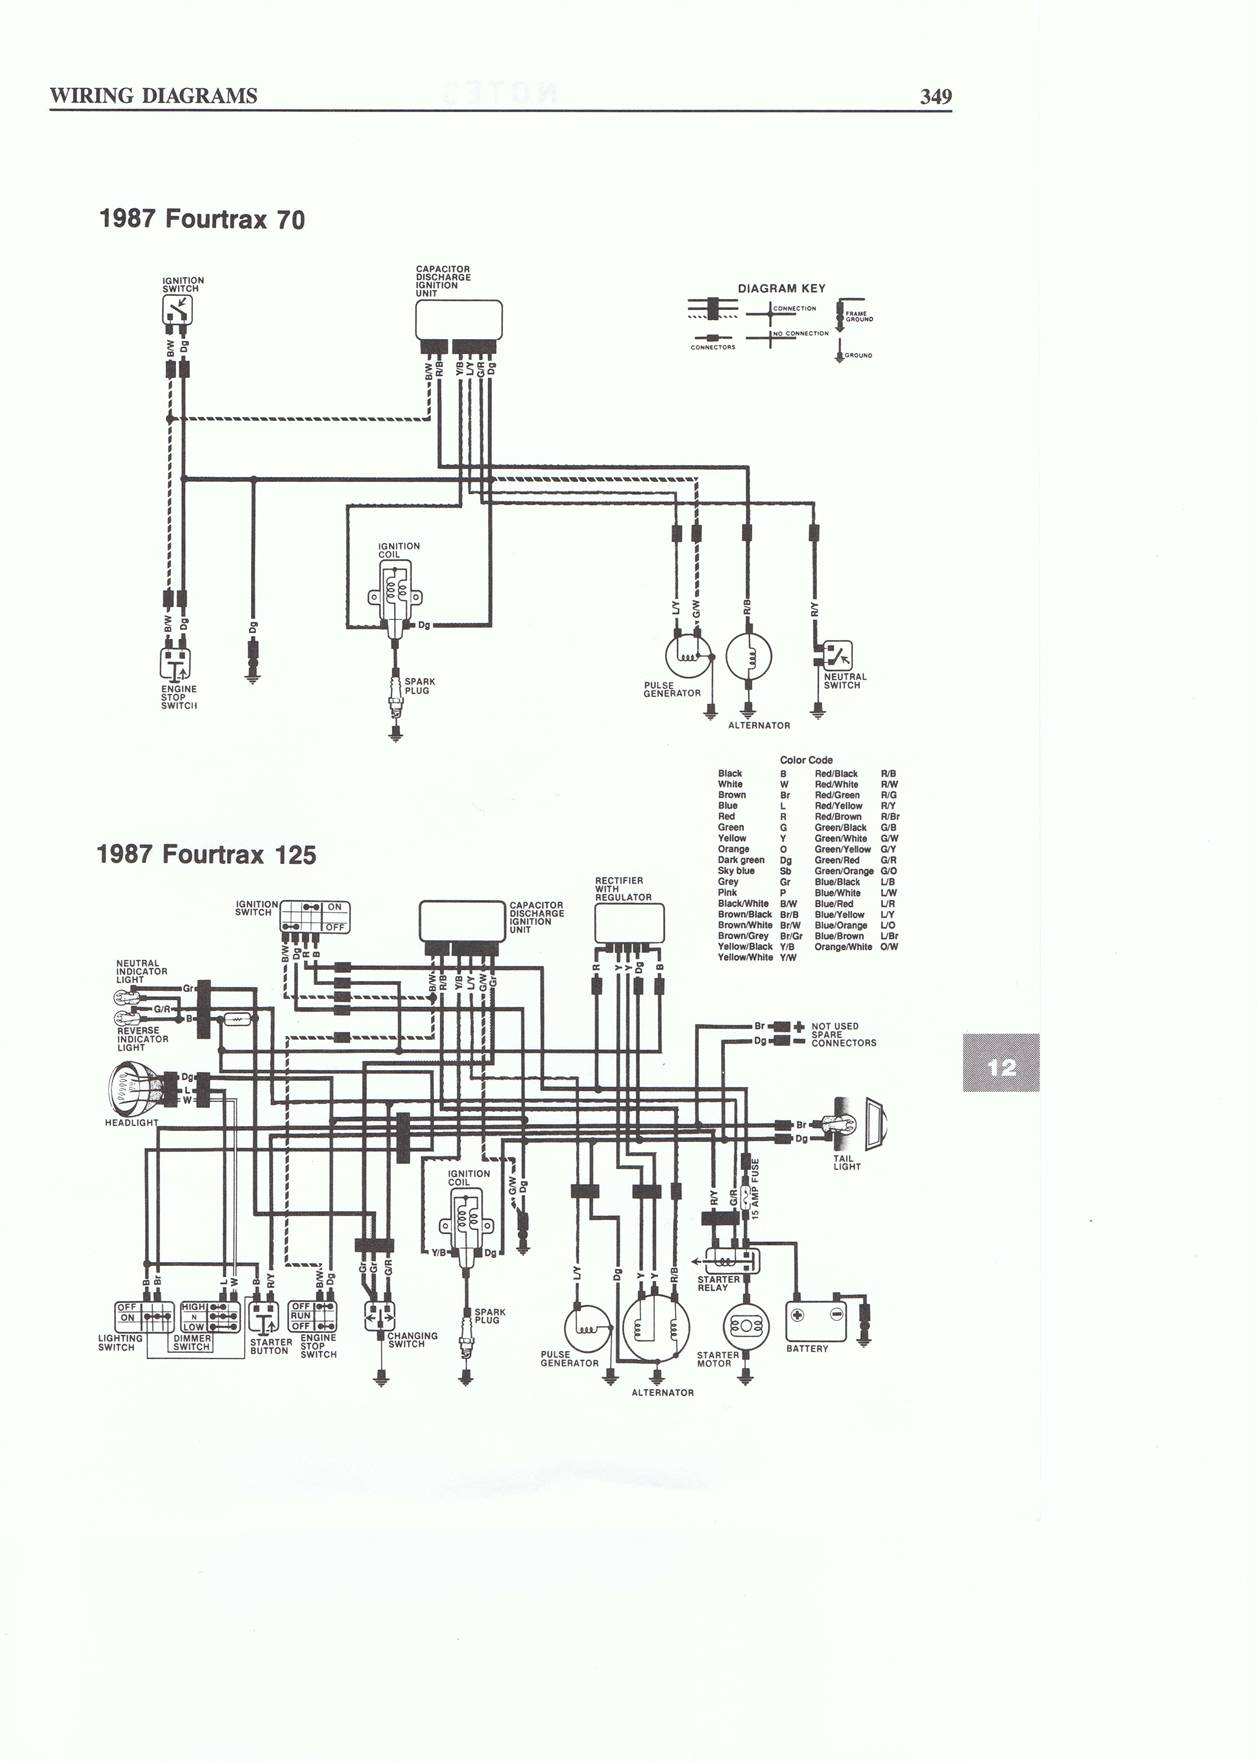 gy6 engine wiring diagram?t=1398725710 gy6 engine wiring diagram gy6 engine wiring diagram at bakdesigns.co